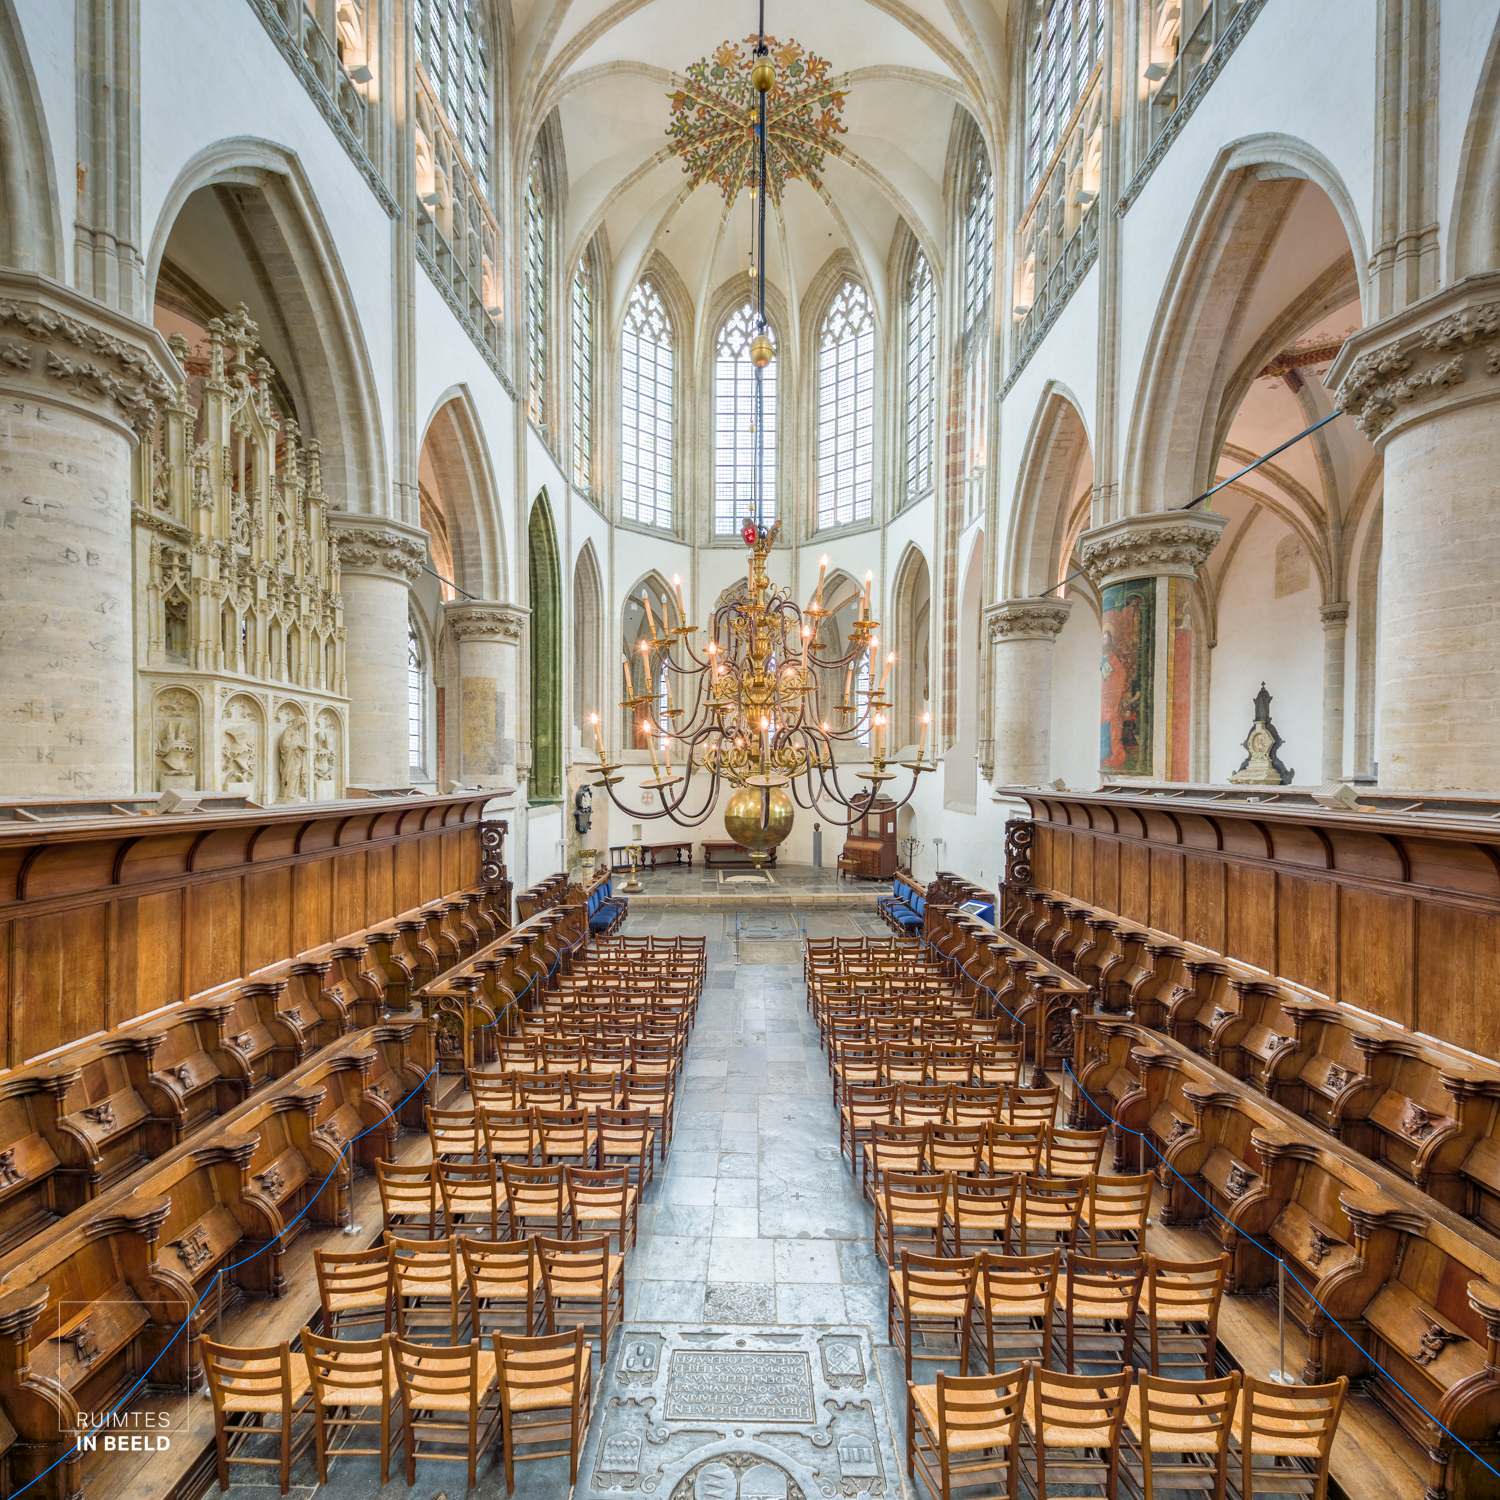 Interieur van de Grote Kerk in Breda | Interior of the grand church in Breda, Netherlands